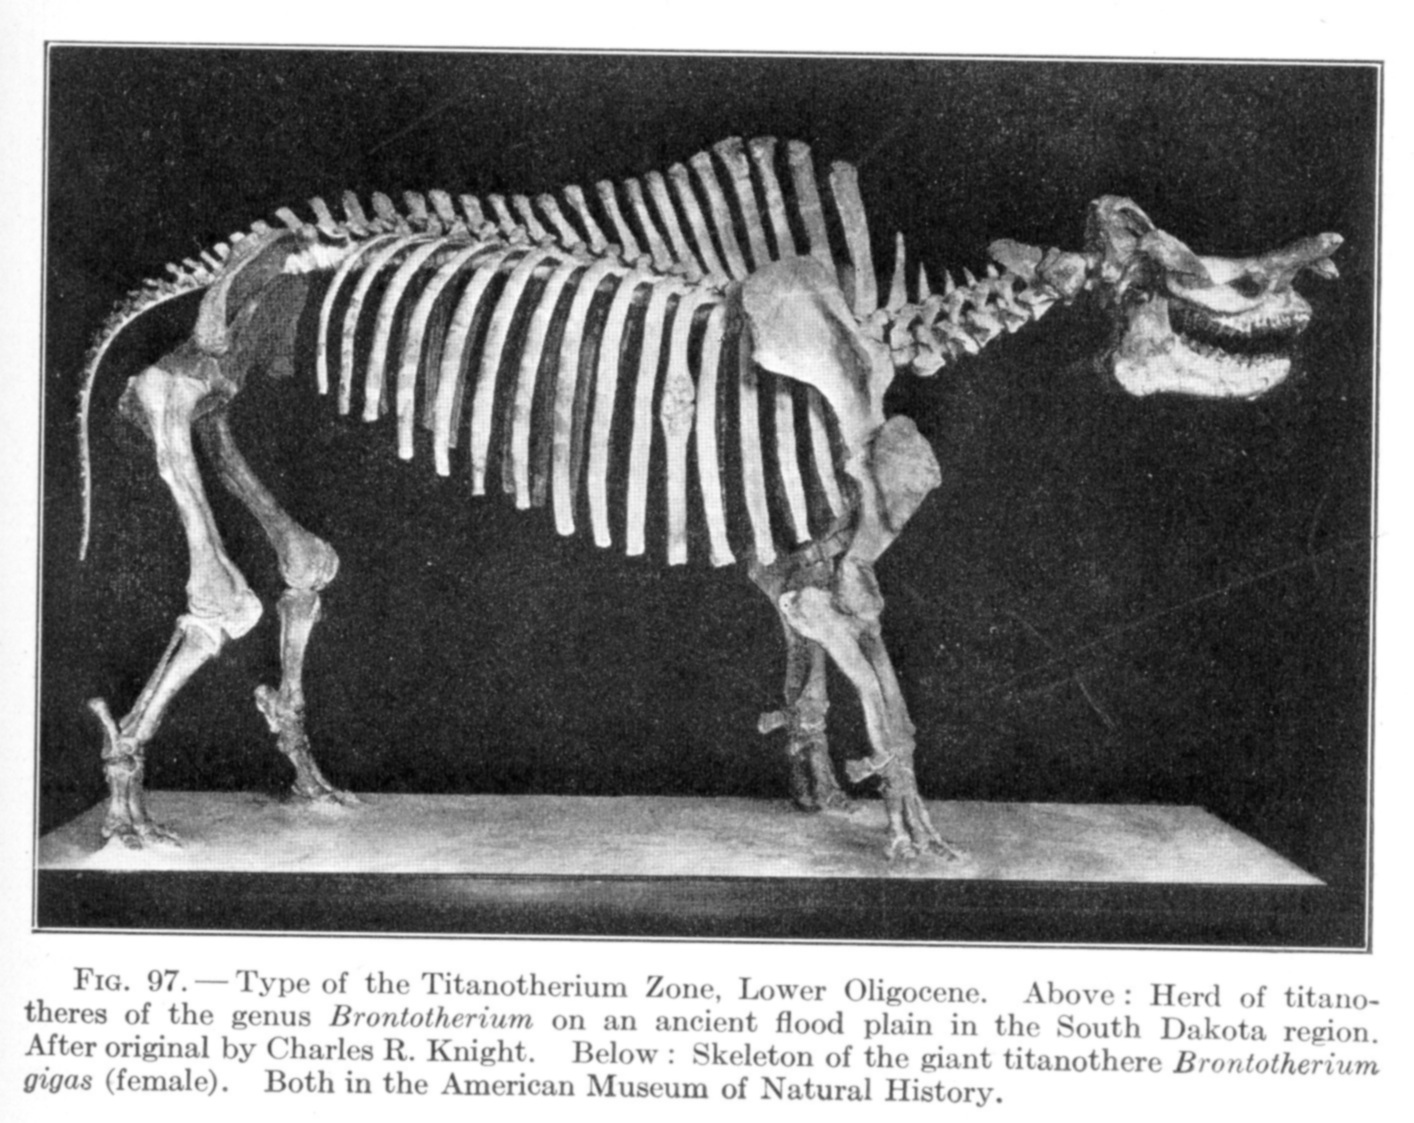 http://www.copyrightexpired.com/earlyimage/bones/large/large_osborn_brontotherium.jpg